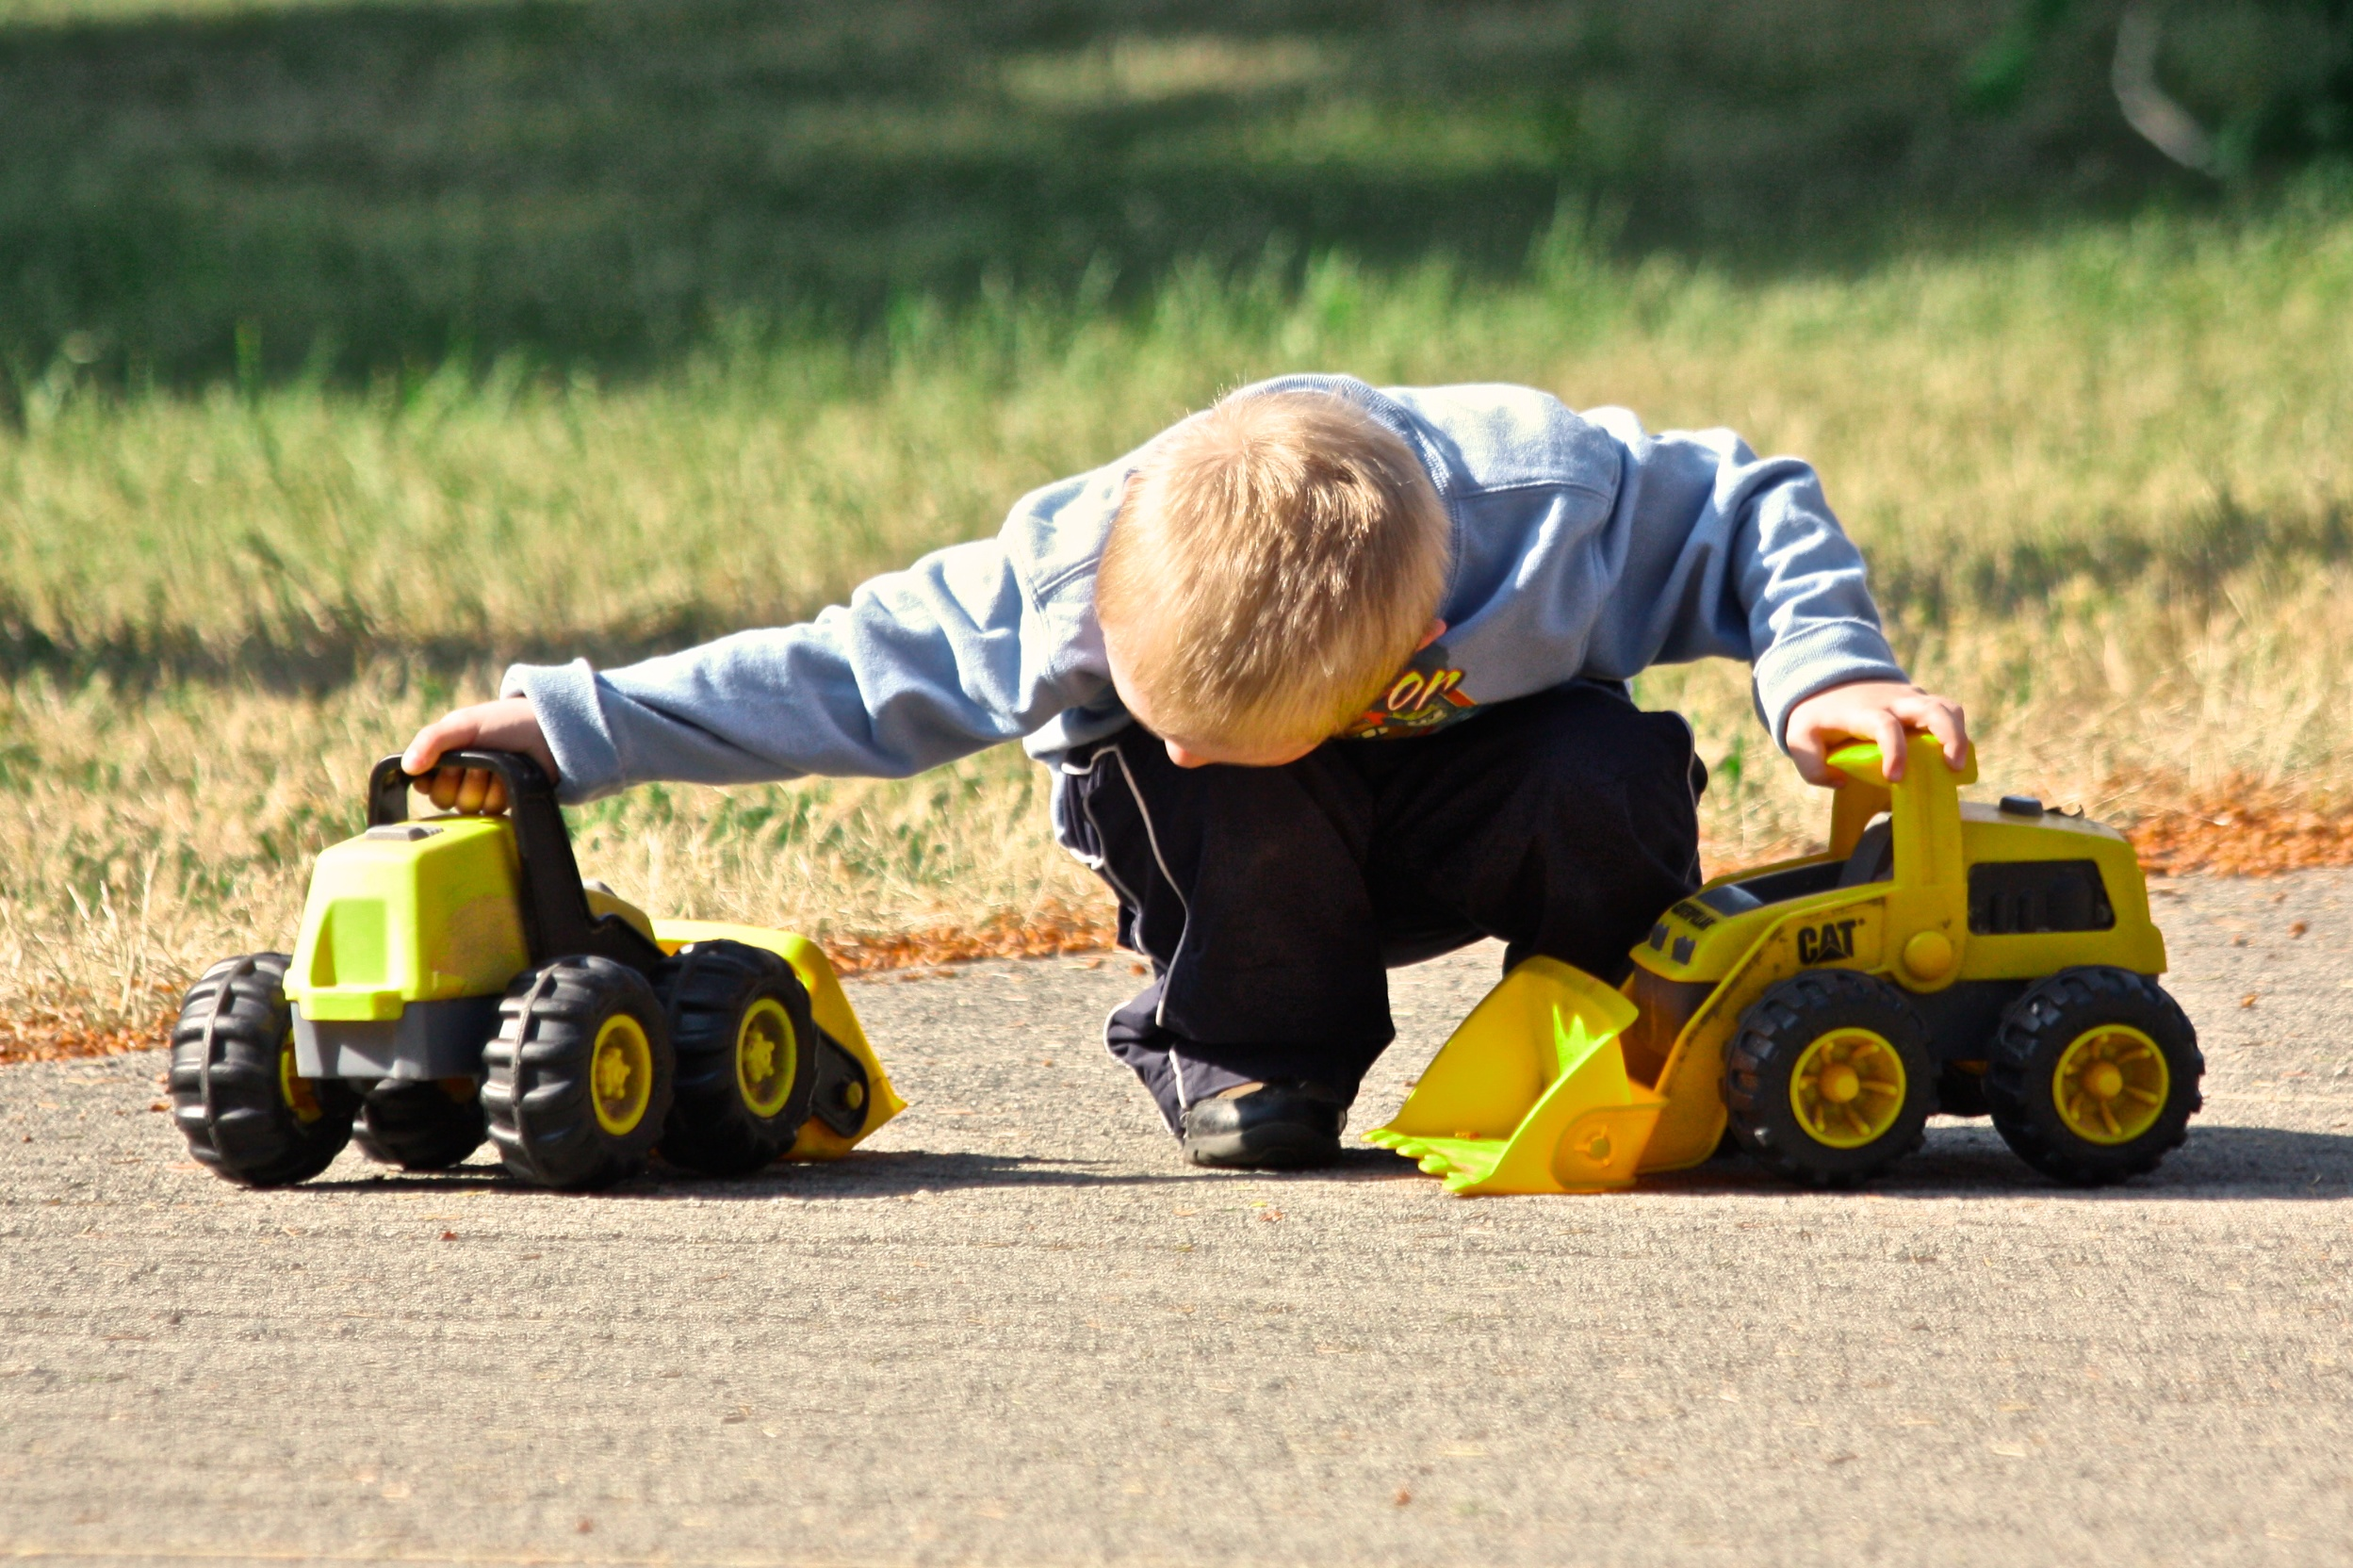 2009-06-06 at 05-14-46 Blonde, Boy, Play, Portrait, Portraits, Toy, Tractor.jpg